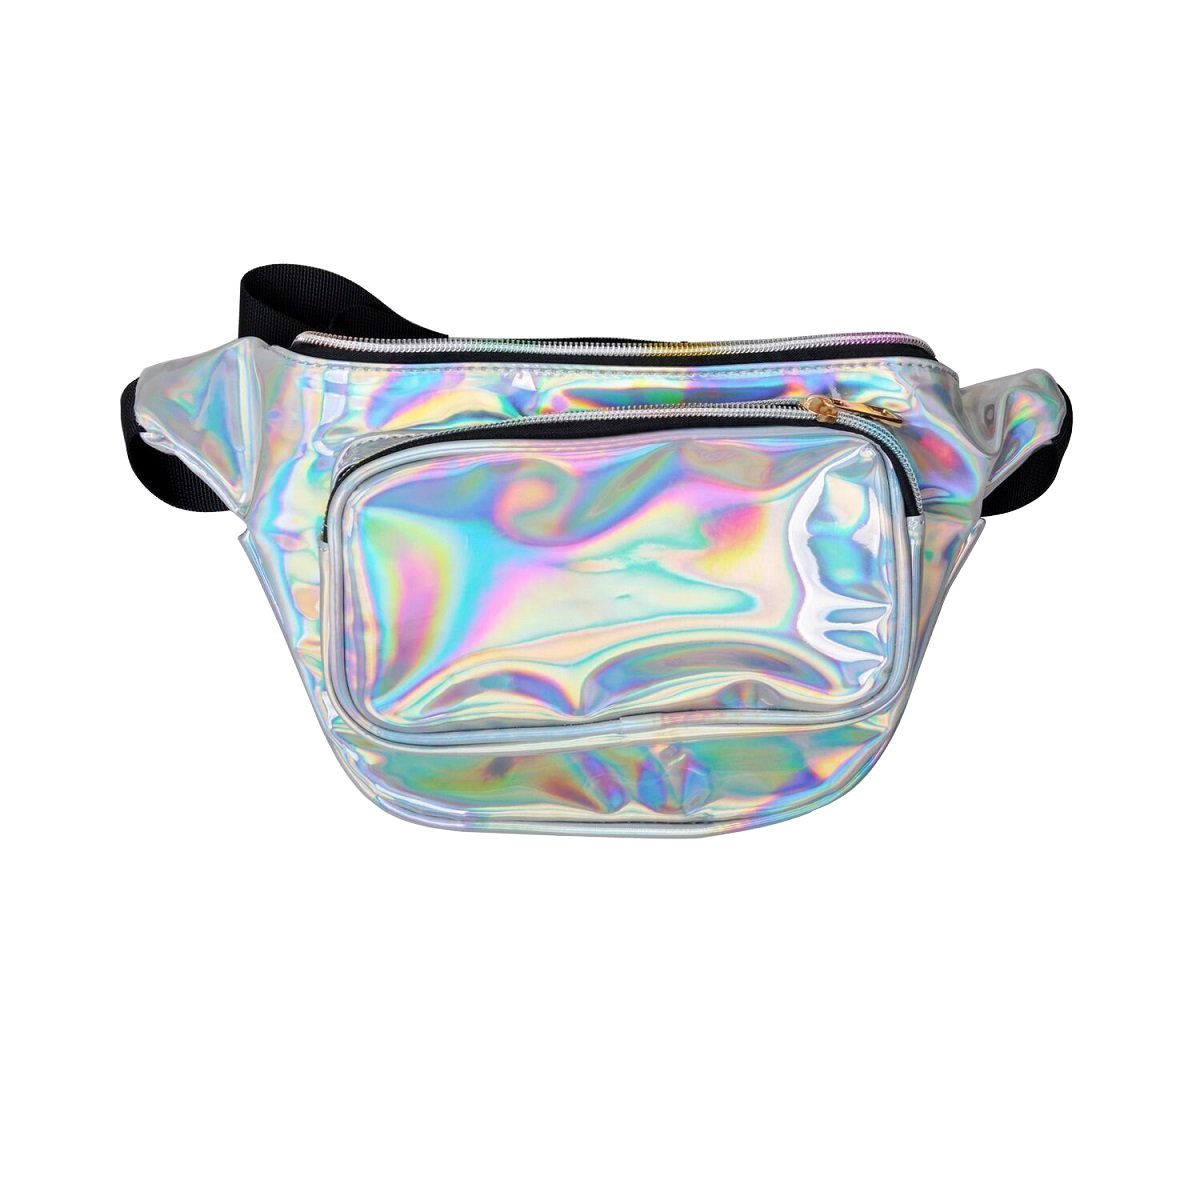 Waist Bag Casual Bag Women Shiny Holographic Fanny Pack Bum Bag(Silver)